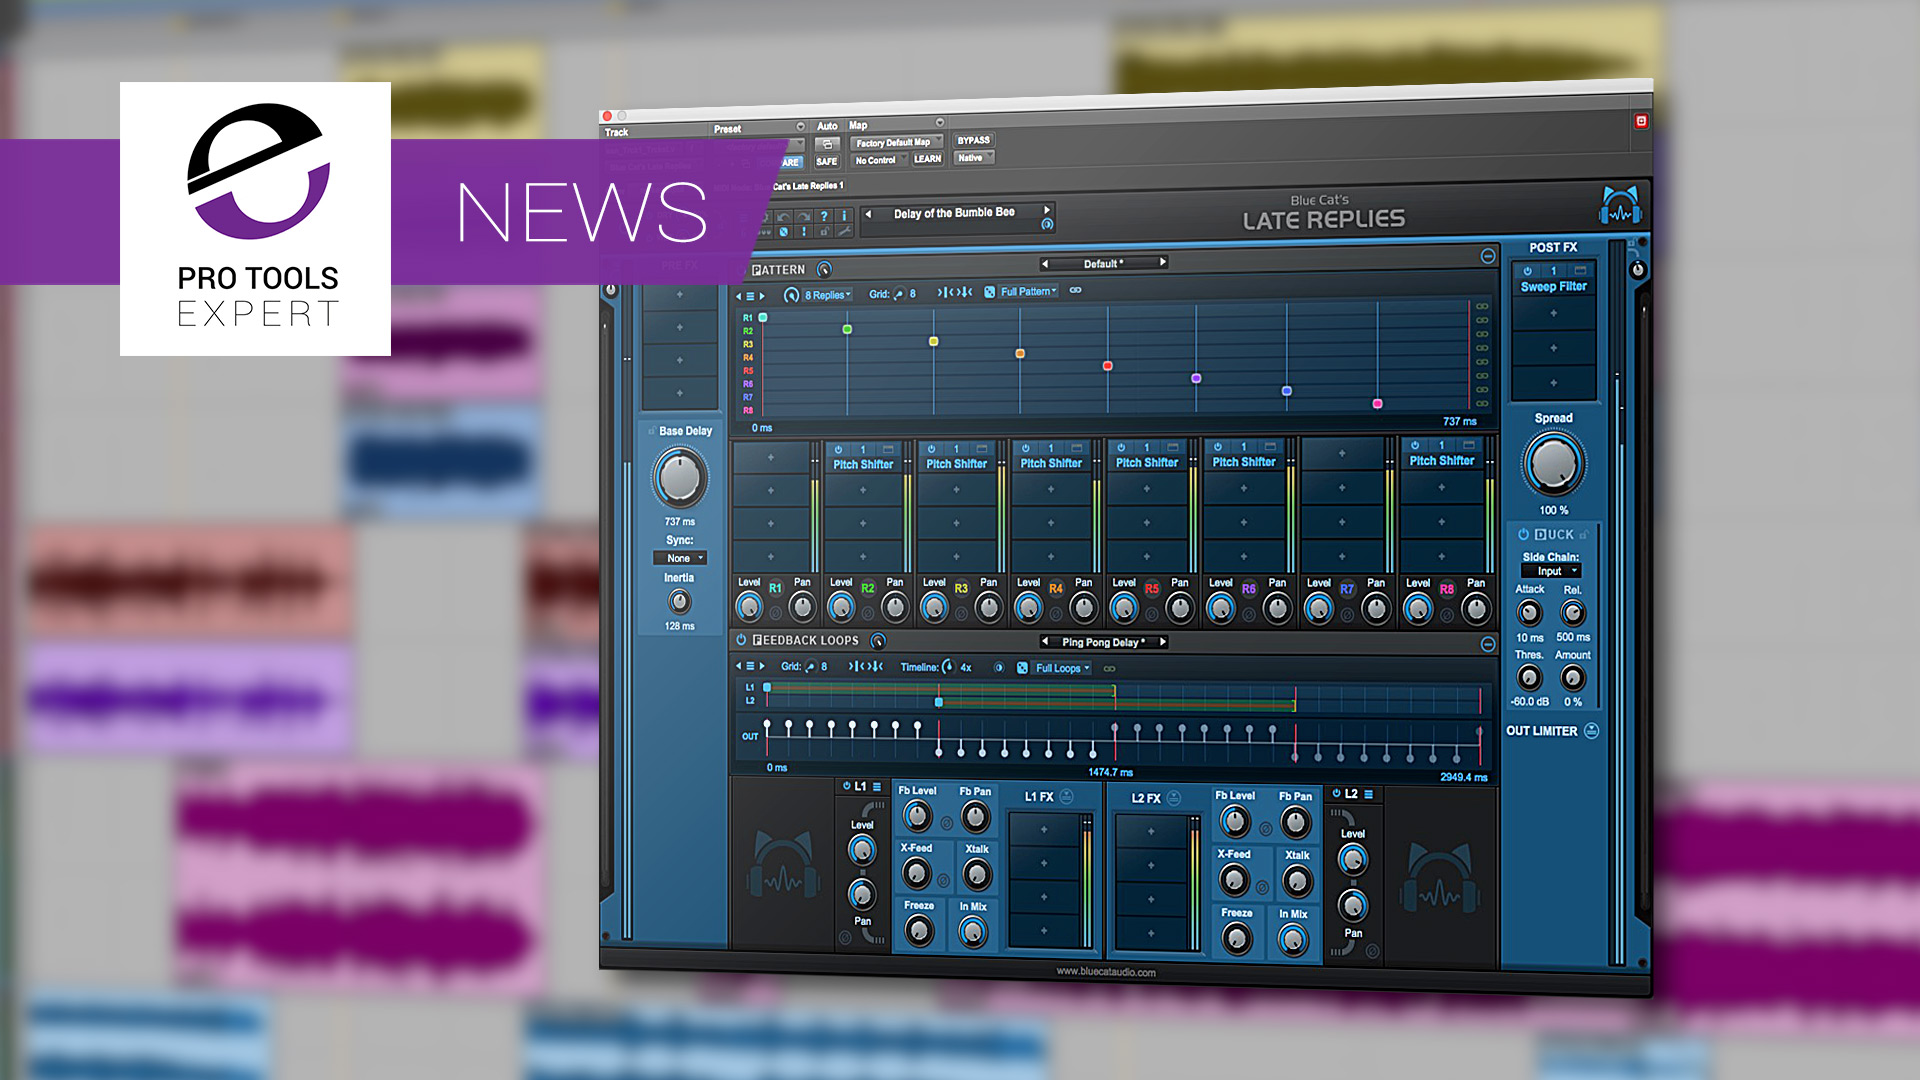 blue-cat-audio-late-replies-delay-multi-effects-plug-in-host-vst-au-in-pro-tools.jpg